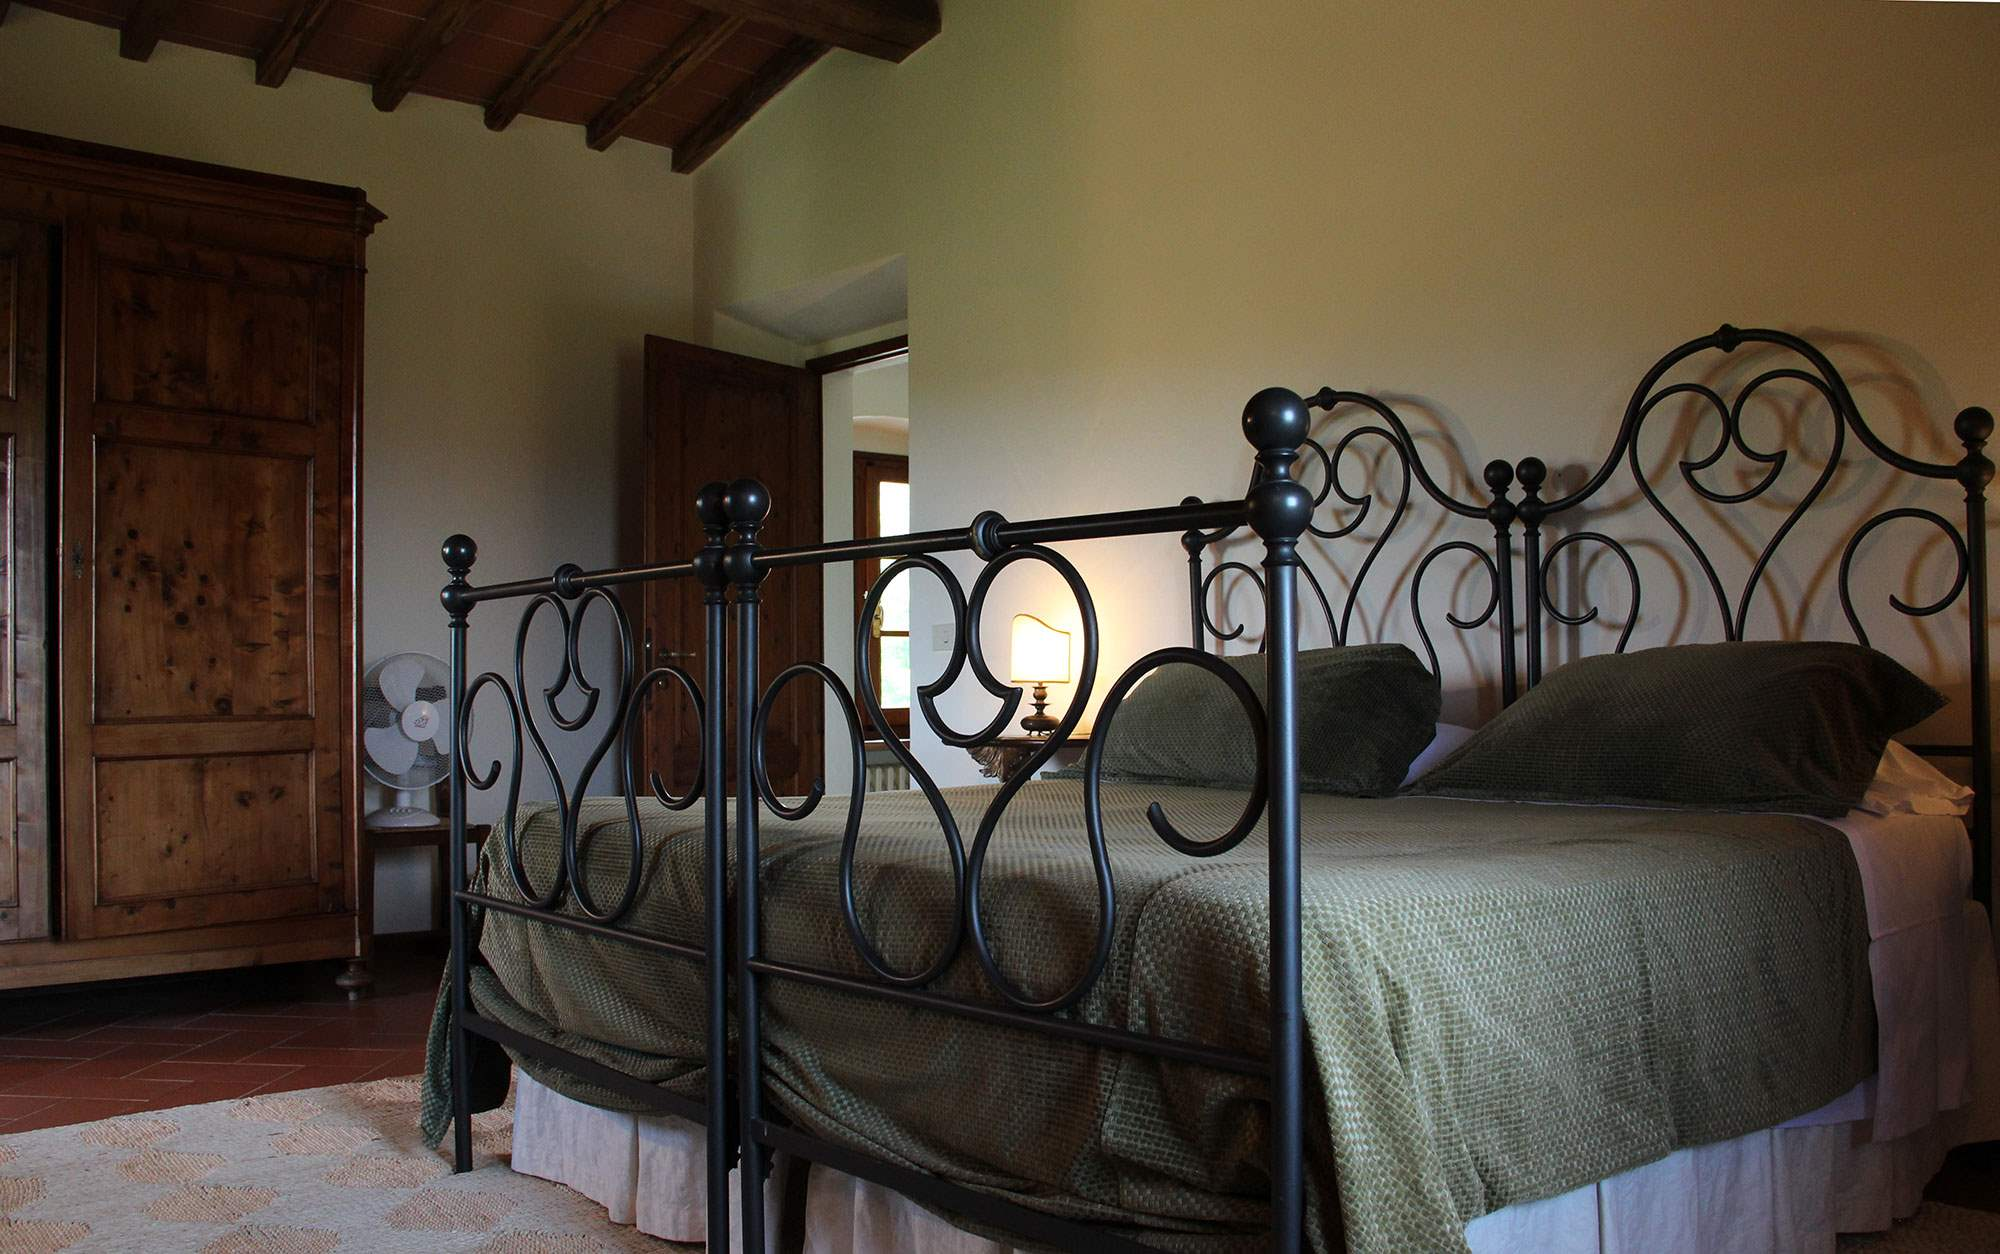 Casa Ferruzzi 2, 3 bedroom apartment in Chianti & Countryside, Tuscany Photo #14